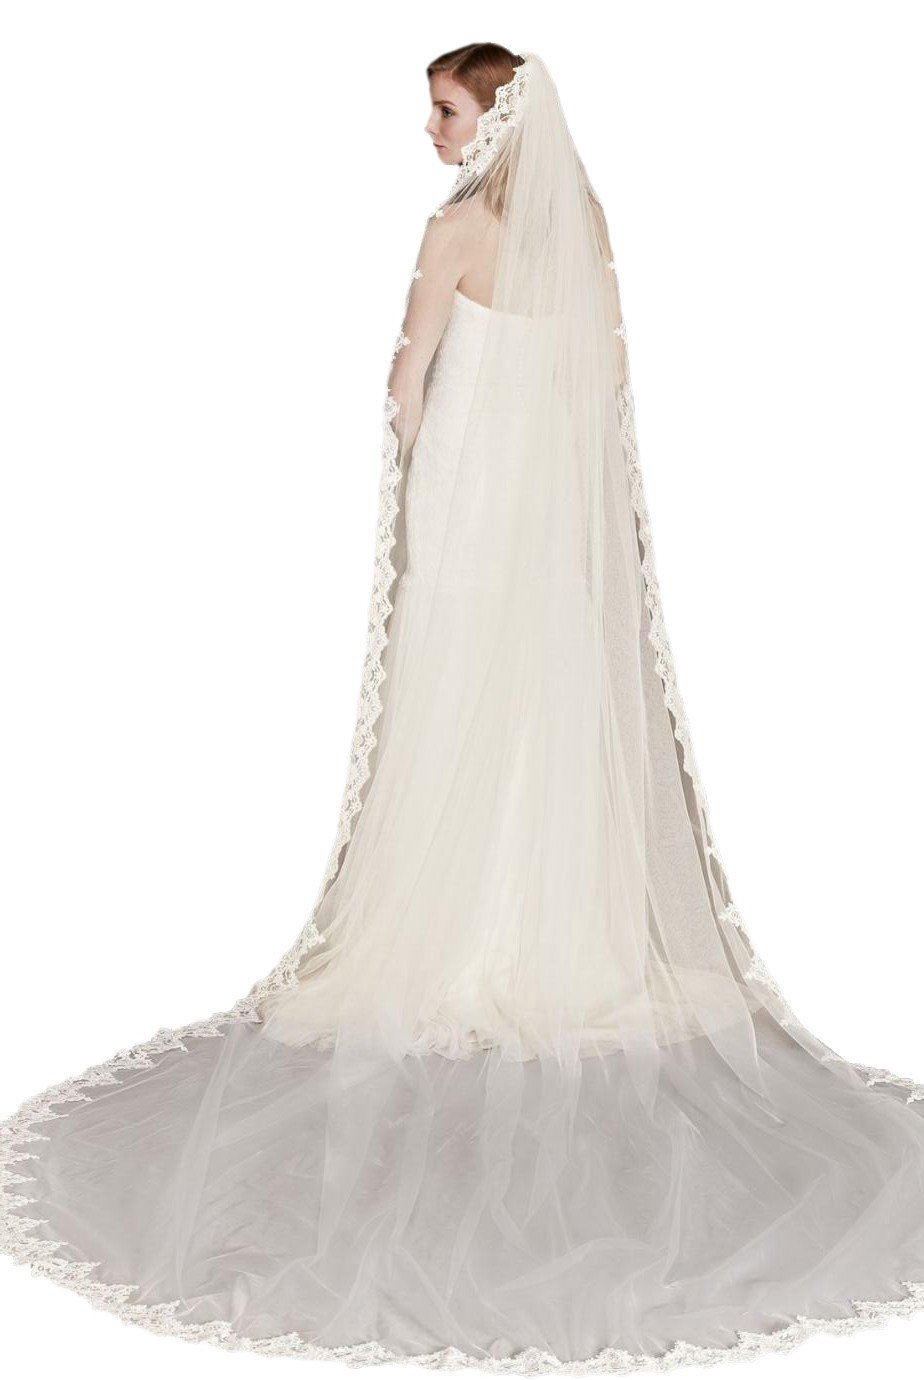 Passat Pale Ivory Single-Tier 3M Corded Lace Cathedral Veil with Scalloped Edge DB2 by Passat